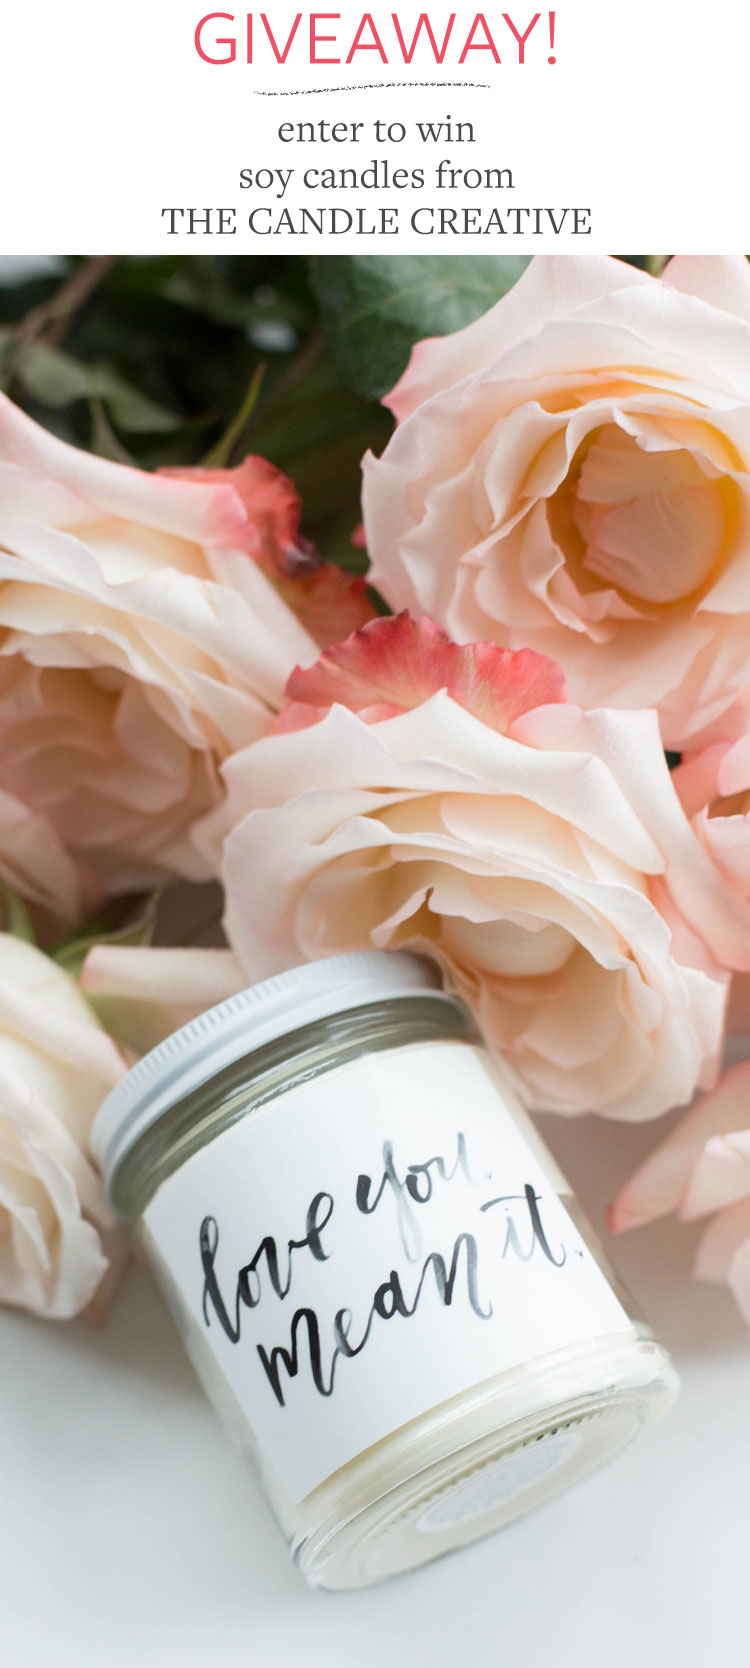 giveaway alert! enter to win soy candles with artwork designed by independent artists. more info on jojotastic.com